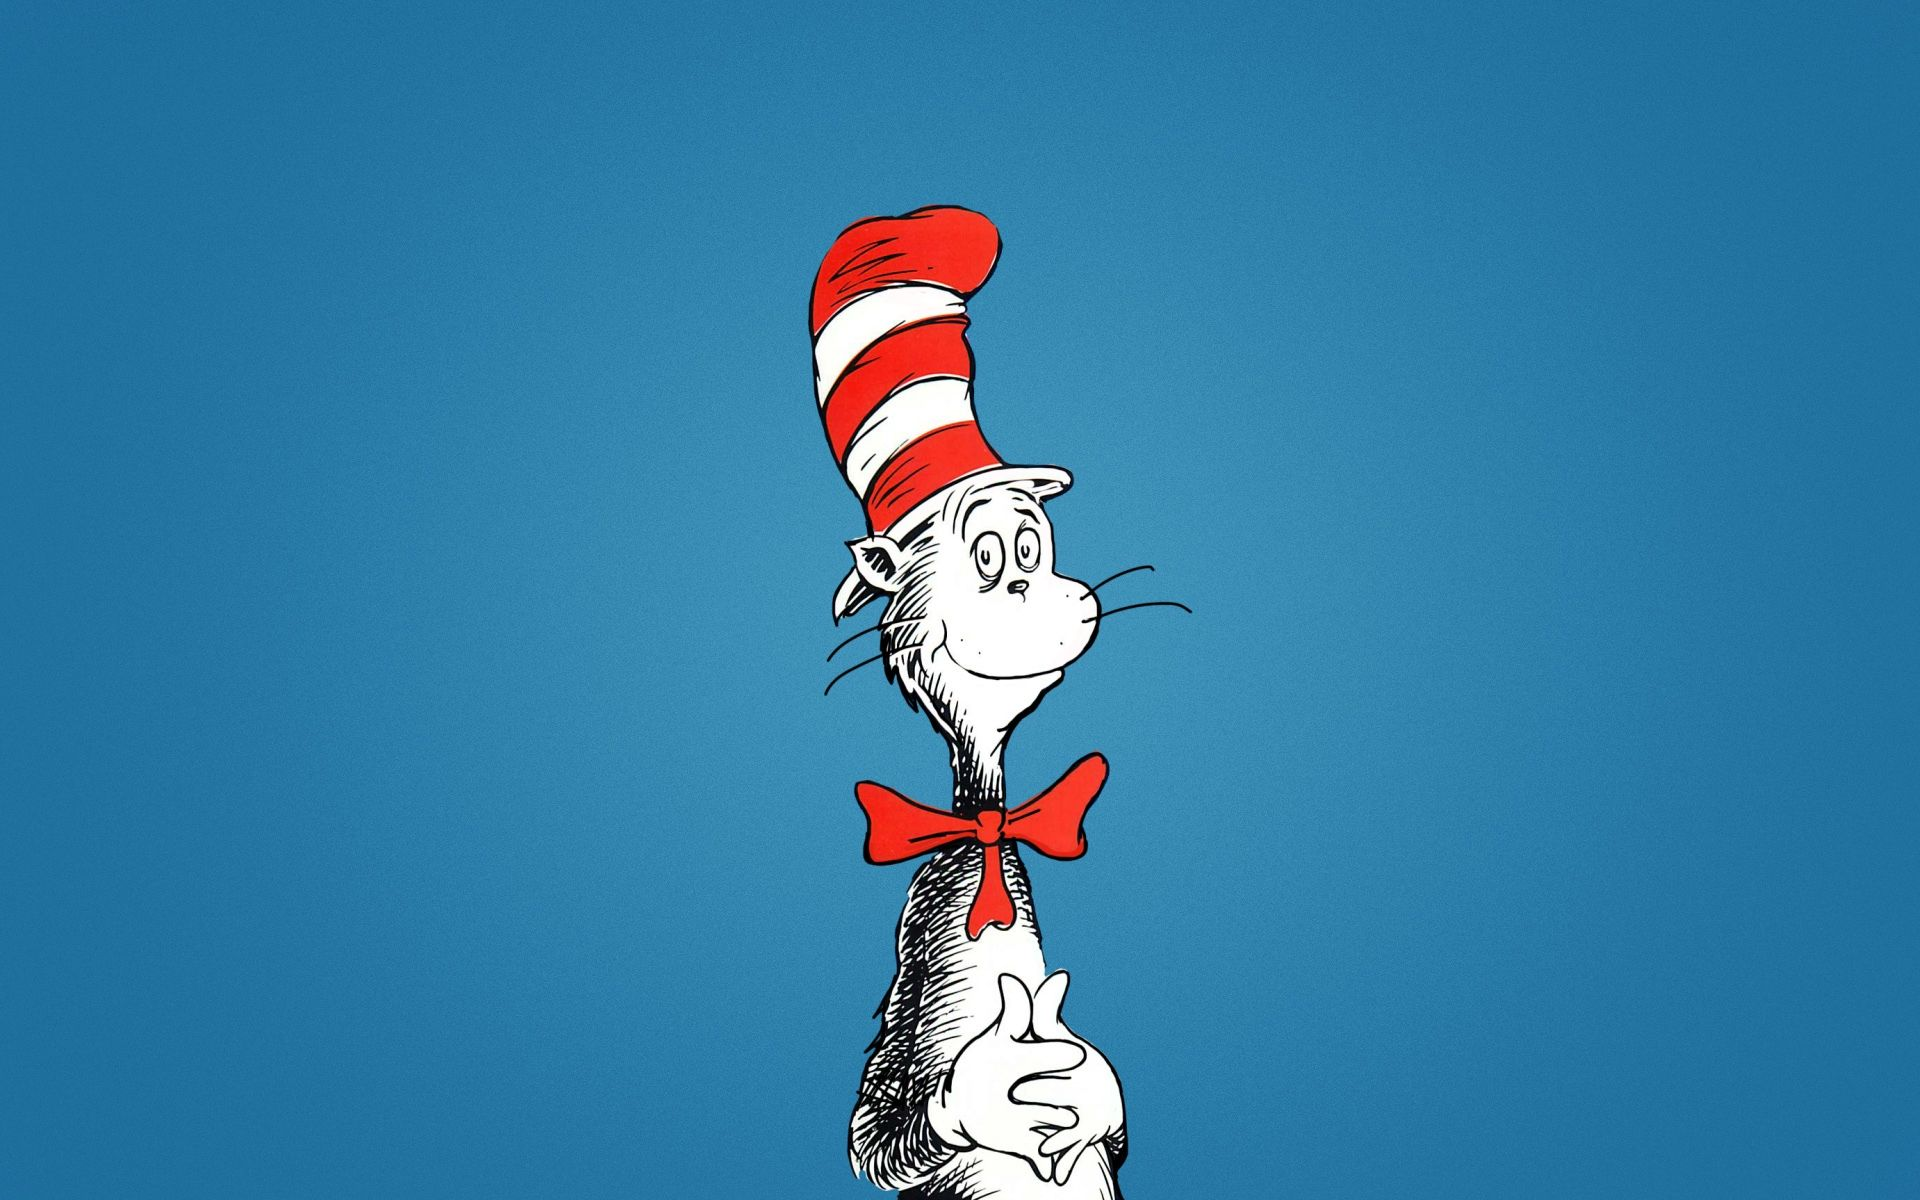 Congratulations Today Is Your Day 19 Ridley Gardens The Christine Cowern Team Seuss Dr Seuss Images Dr Seuss